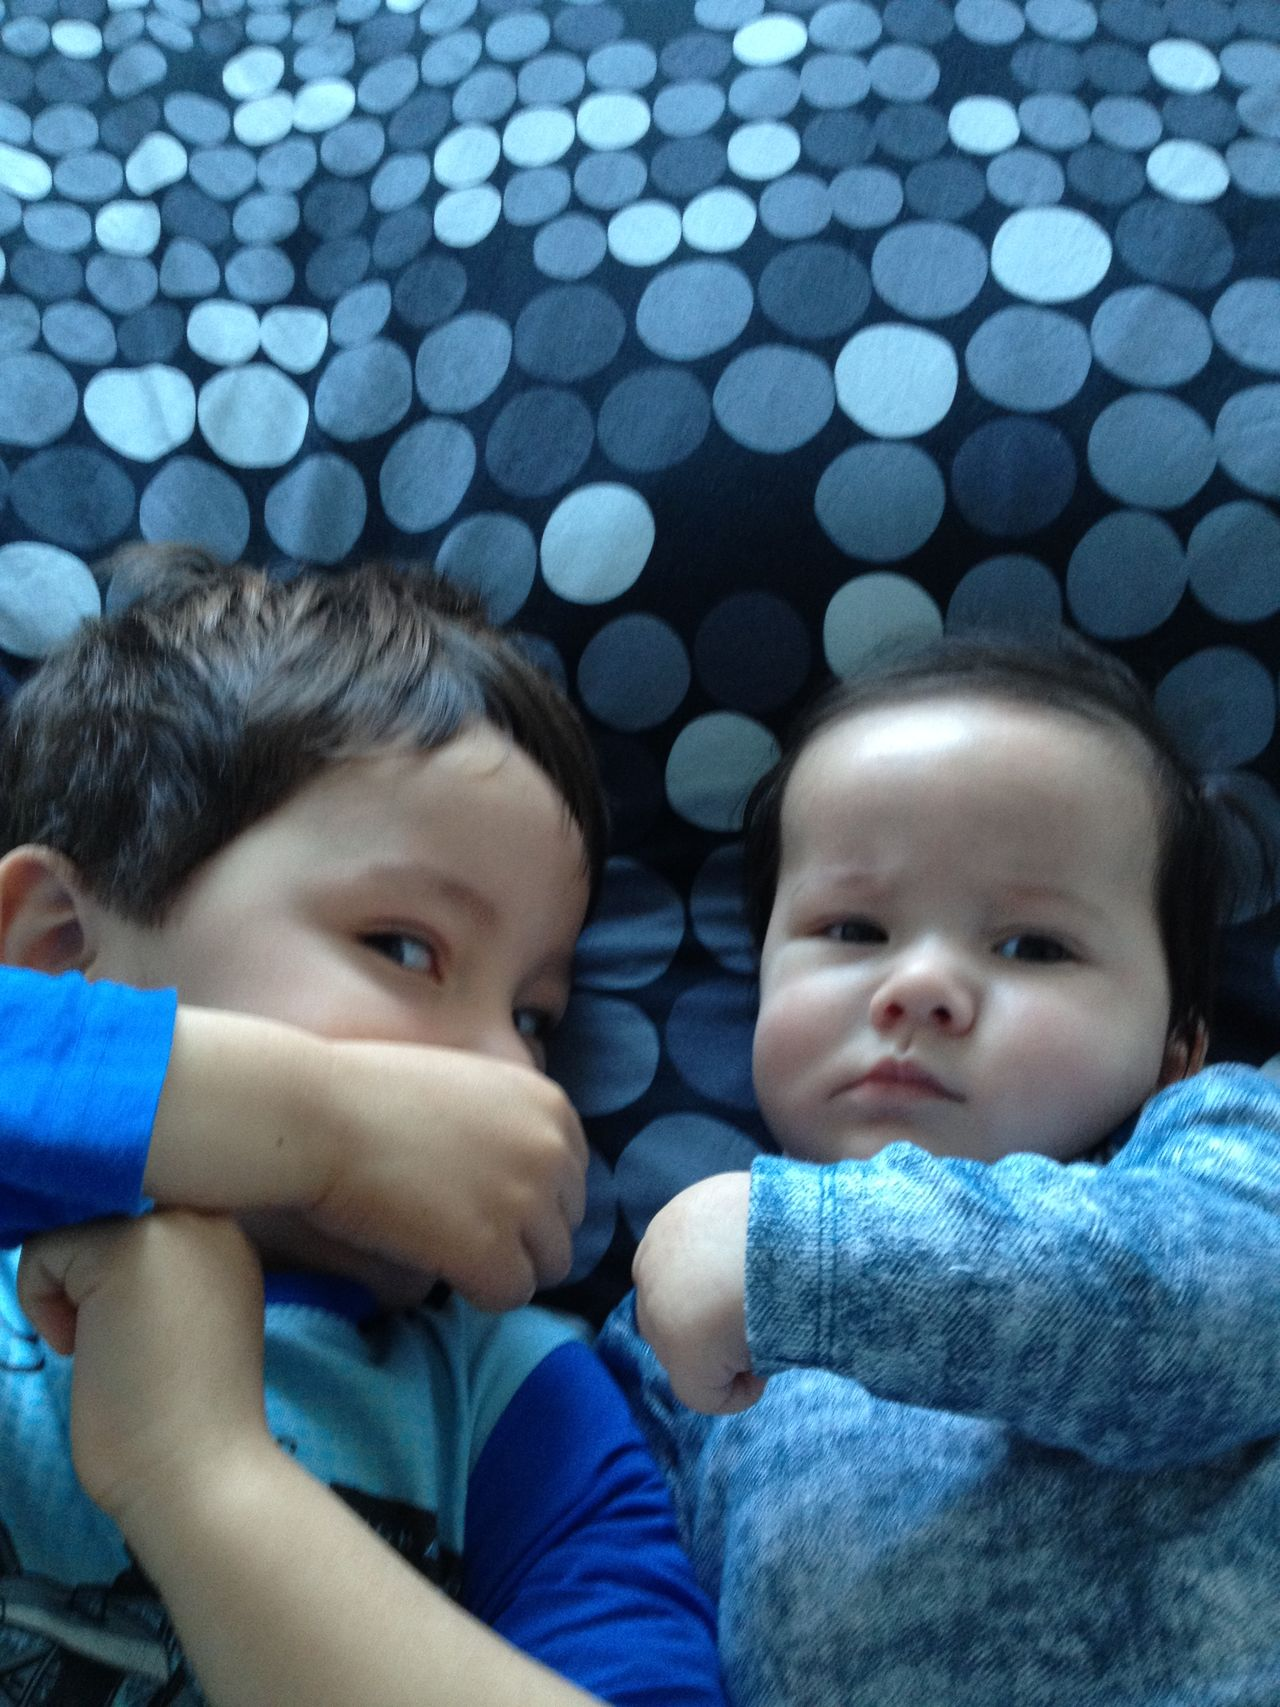 Boys Brother Childhood Cute Firstbump Love Sibling Togetherness